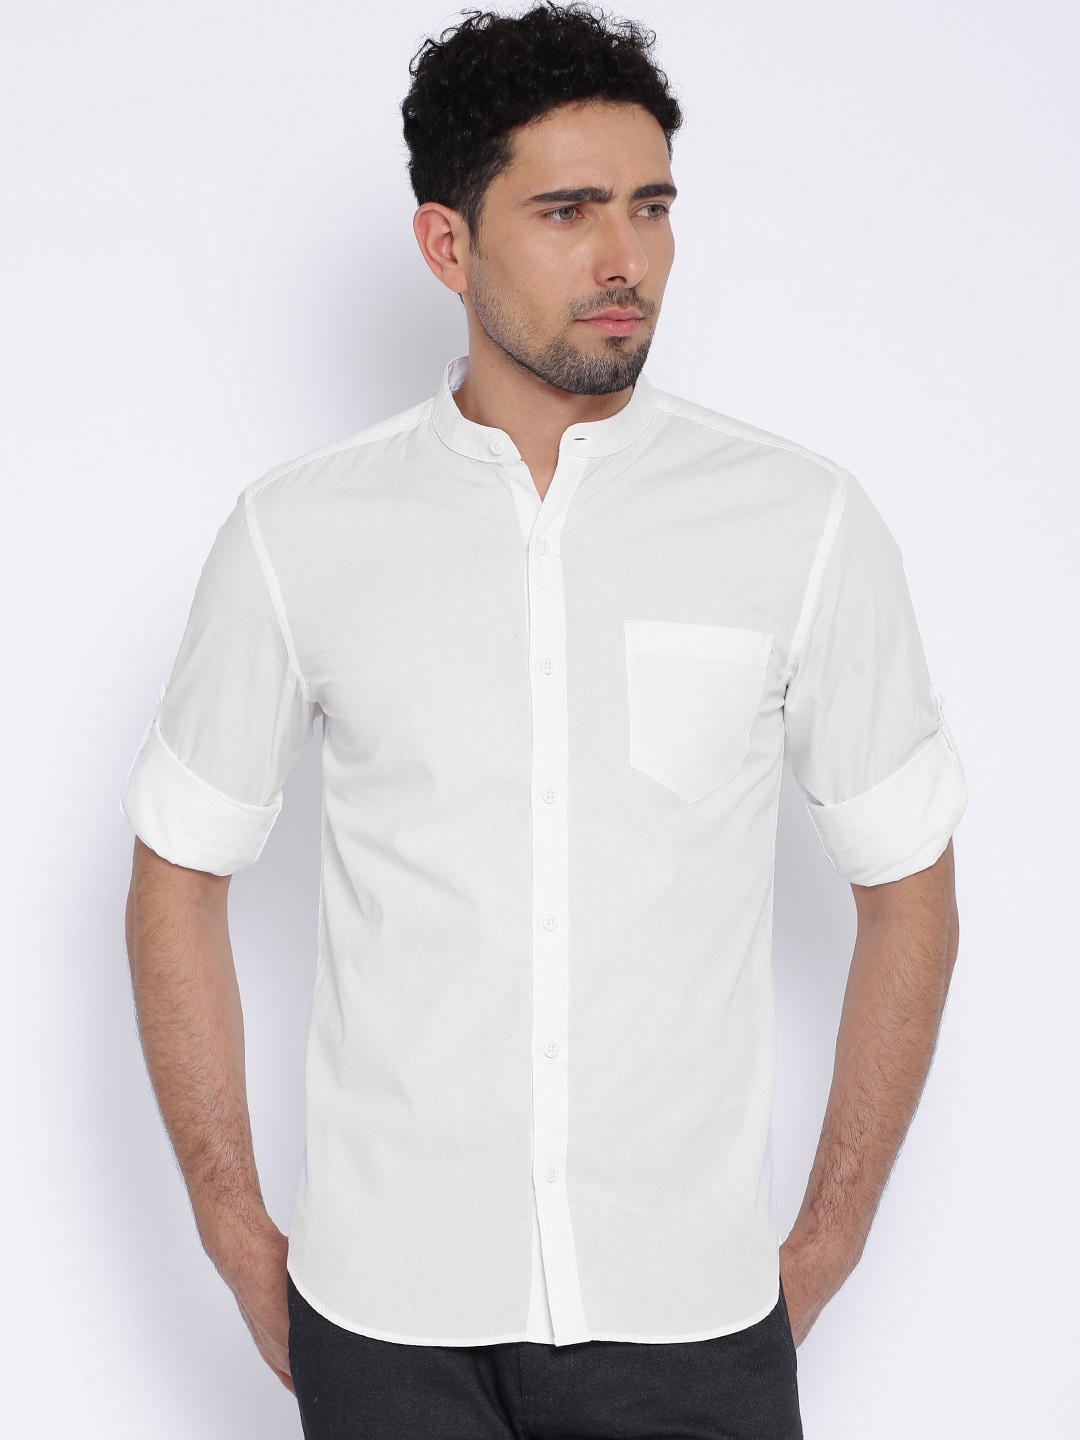 Find your adidas Men - White - Short Sleeve Shirts at stilyaga.tk All styles and colors available in the official adidas online store.